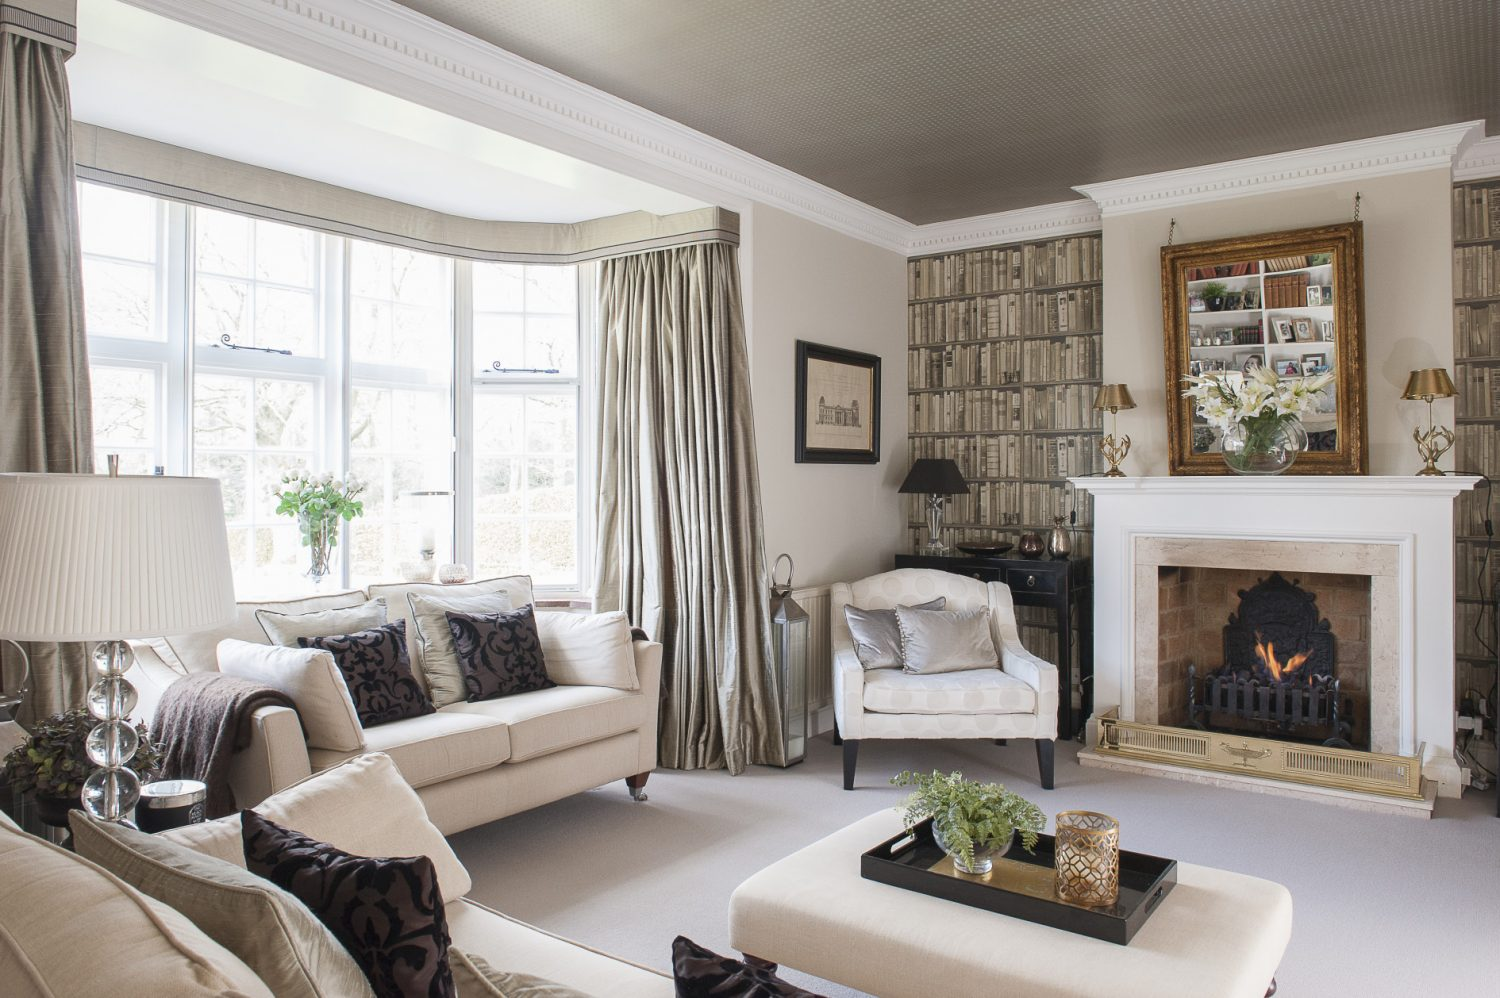 On either side of the fireplace, the alcoves are papered with Andrew Martin's faux books and over the mantelpiece, Victoria has hung a gilt mirror from a heavy antique chain that, cleverly, tilts the looking glass in a downward direction, reflecting the room